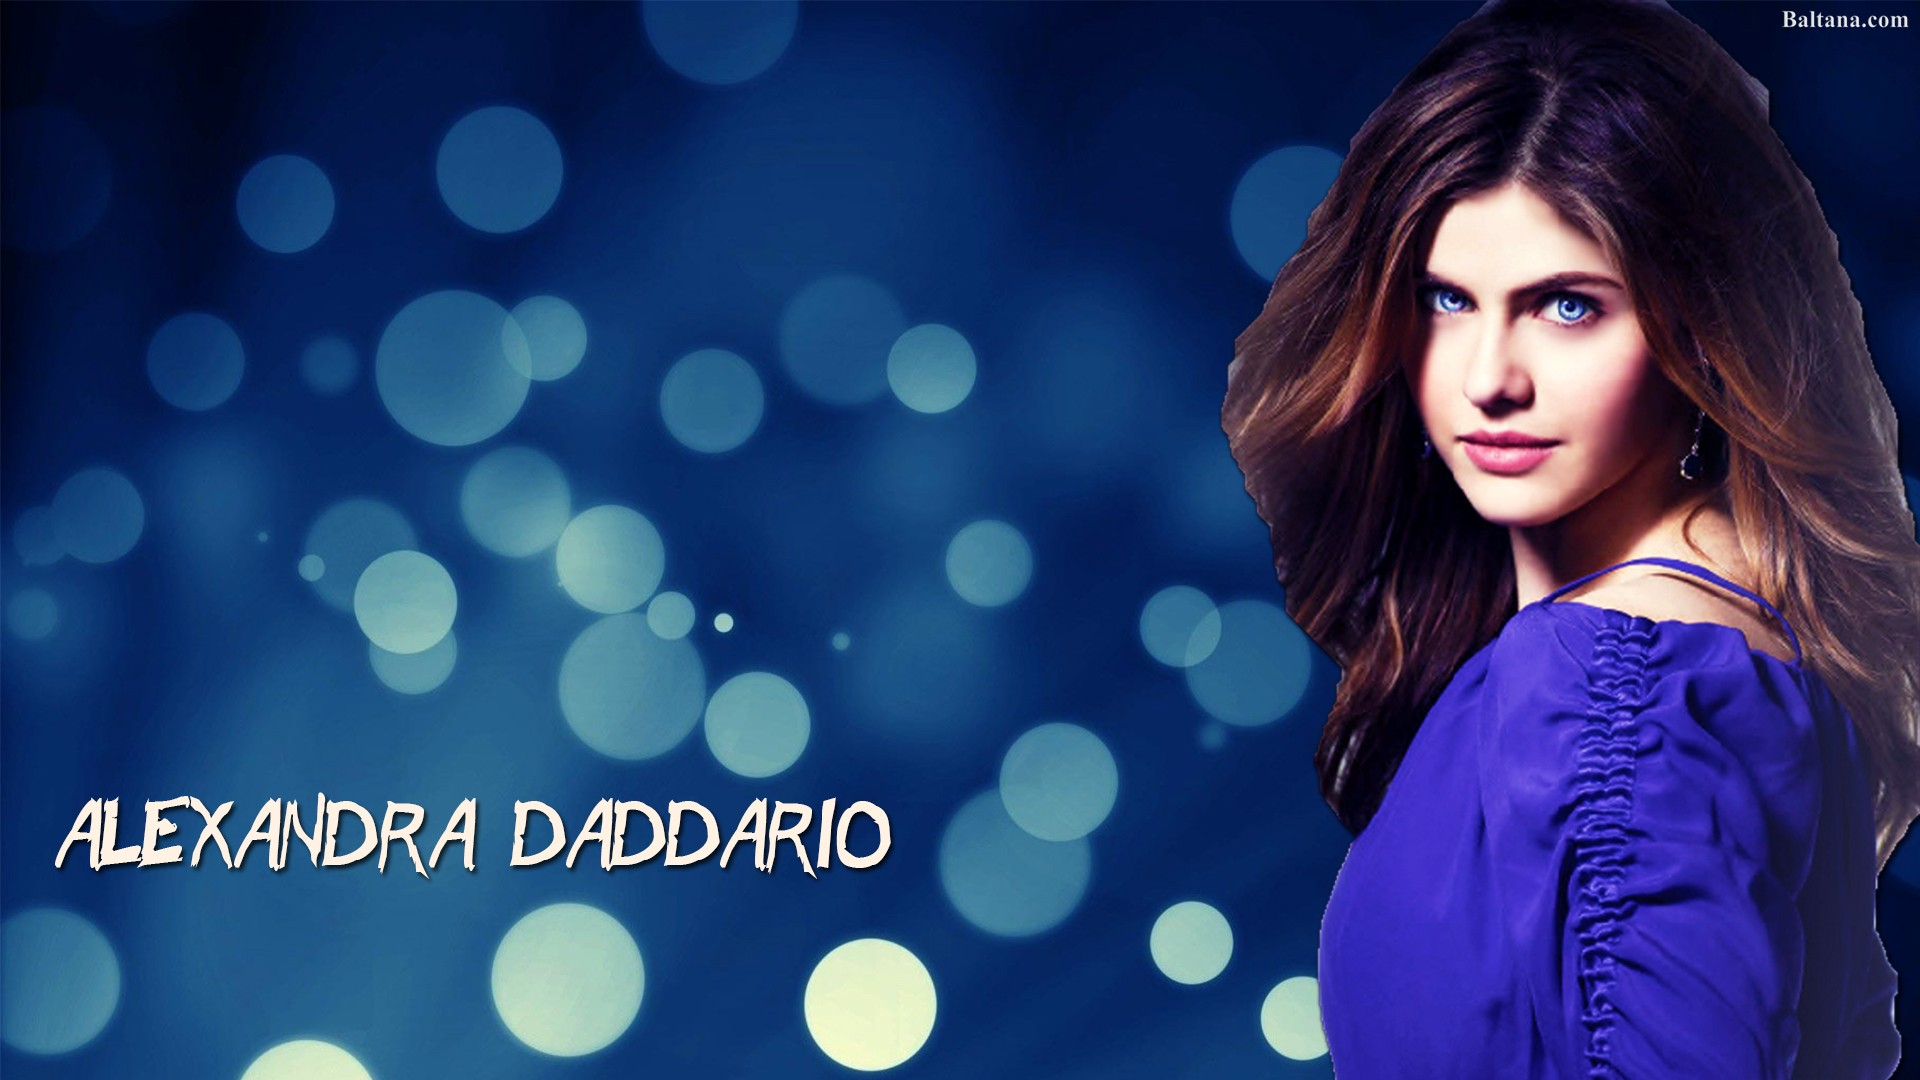 Free Download Alexandra Daddario Wallpapers Hd Backgrounds